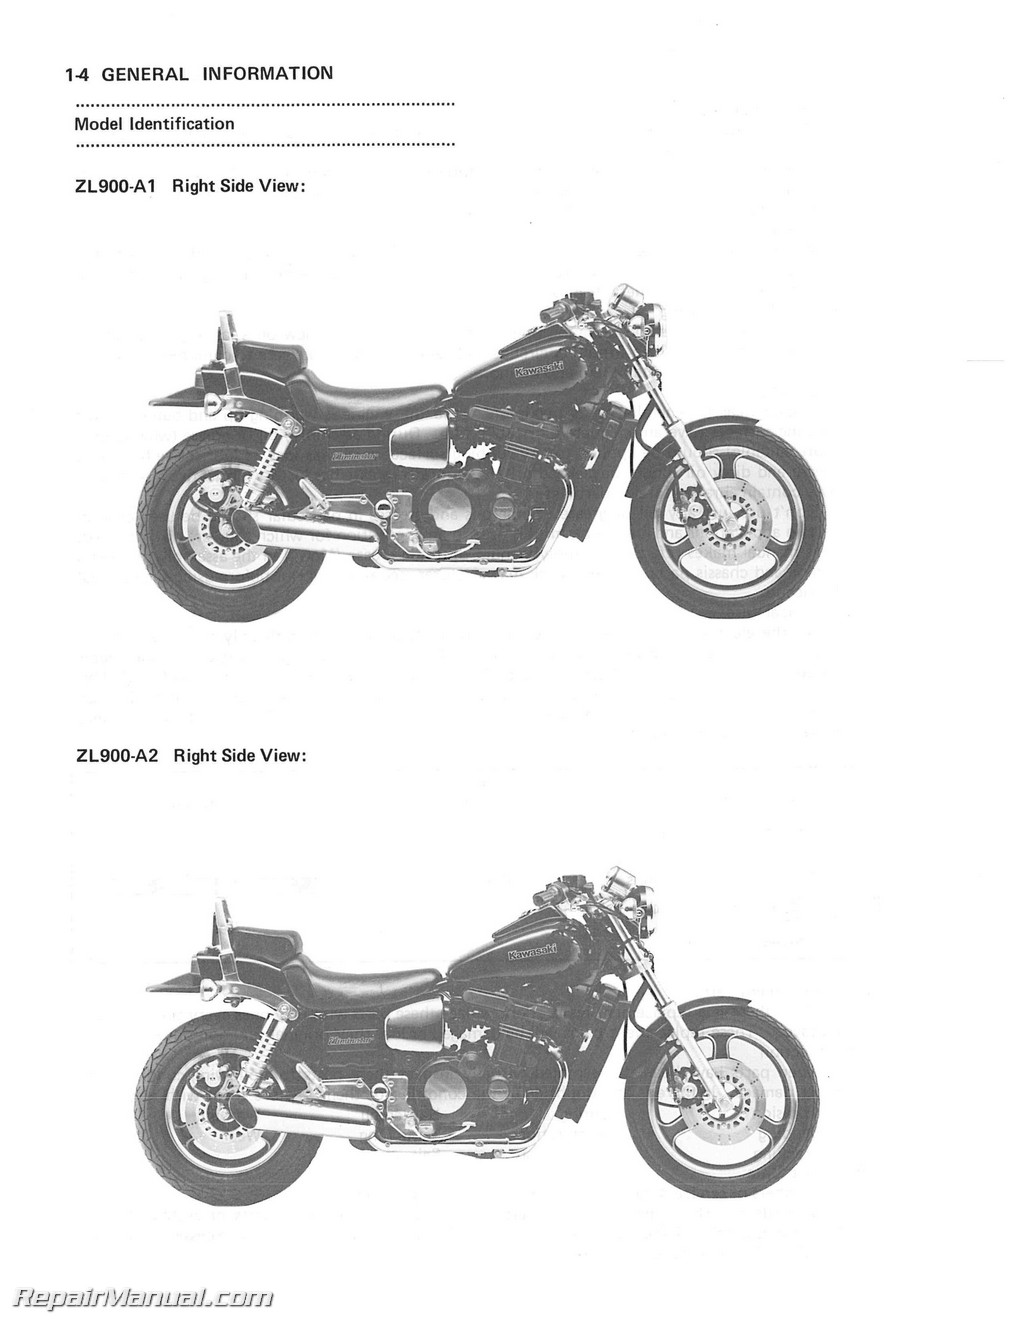 Wire Diagram Kawasaki Zl 900 Custom Wiring W800 Eliminator Enthusiast Diagrams U2022 Rh Rasalibre Co Ninja 650r Zx 14